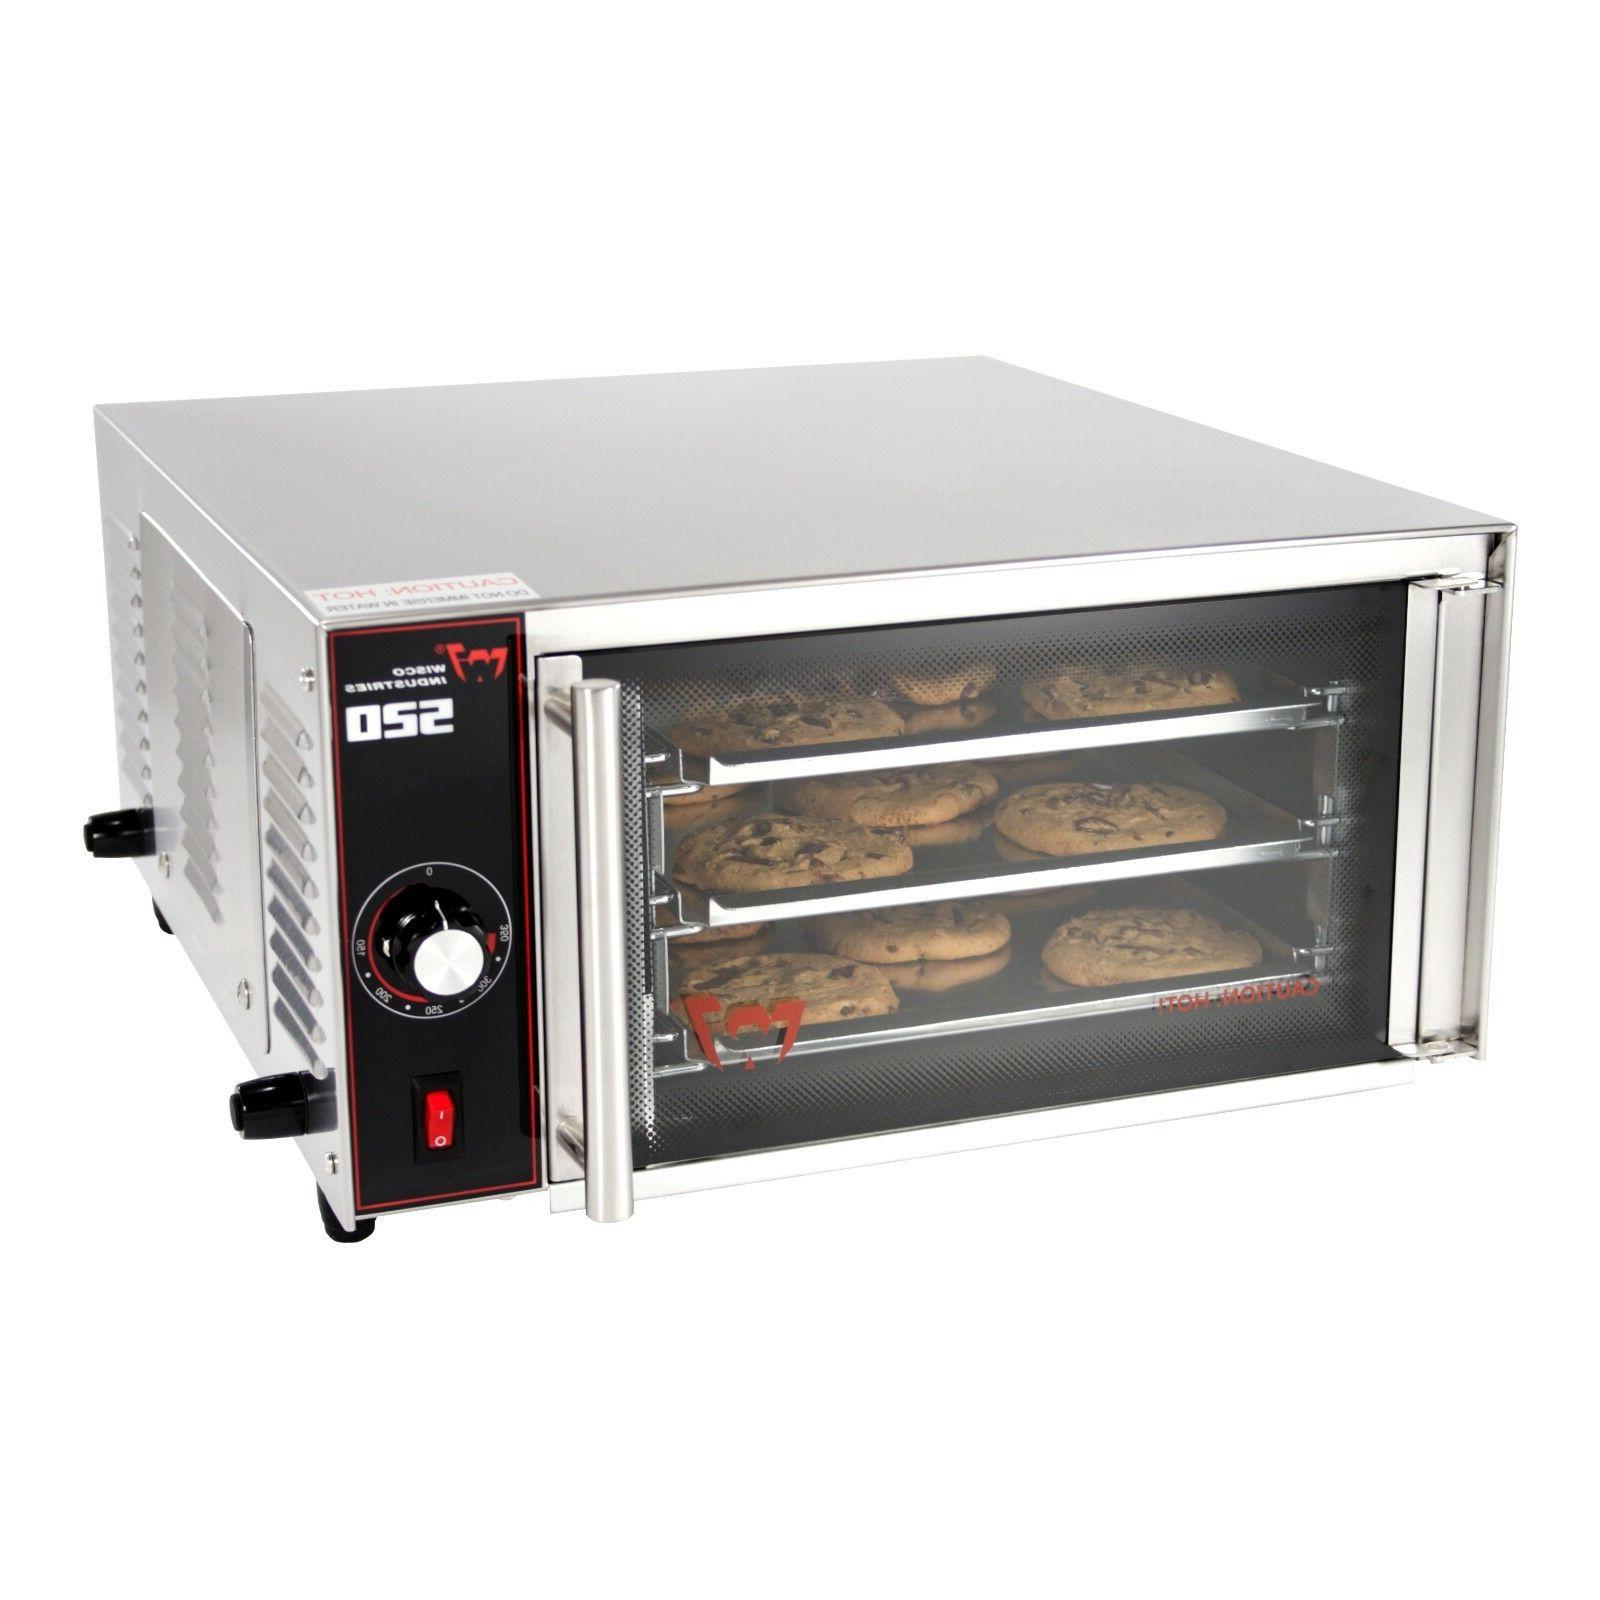 520 stainless steel commercial counter top cookie